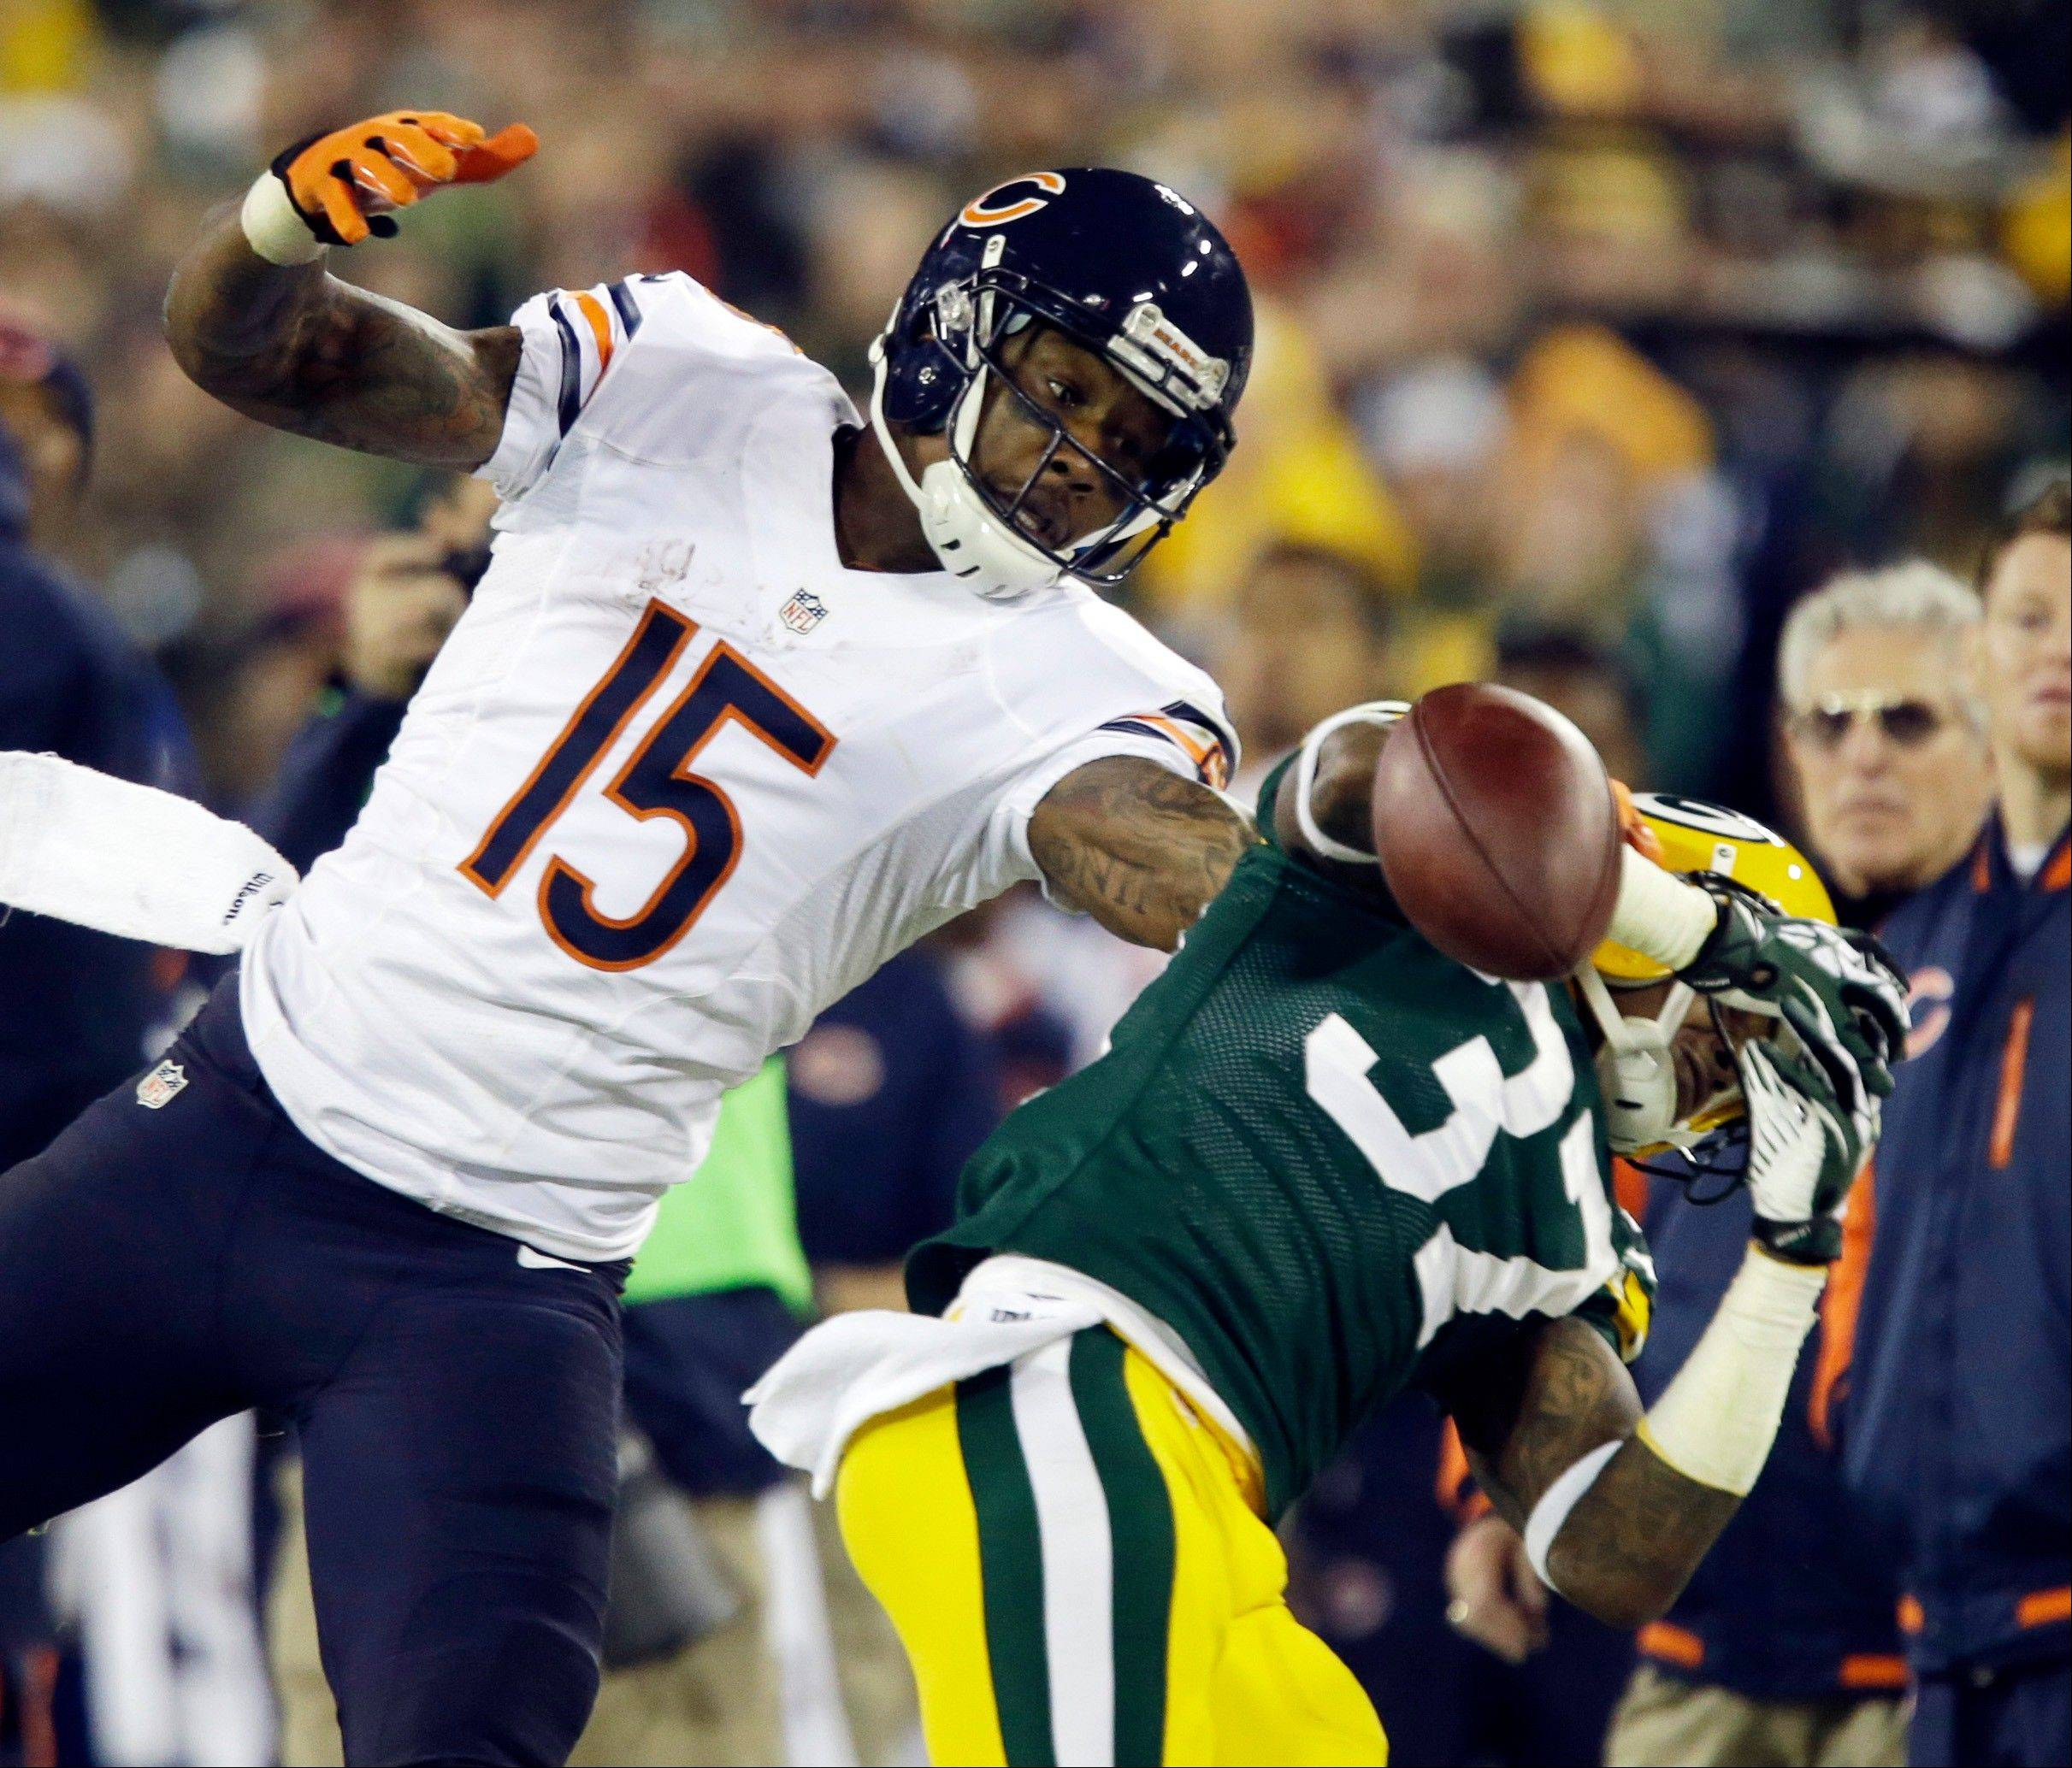 Sam Shields breaks up a pass intended for Brandon Marshall during the second half of the Bears' victory over Green Bay on Monday.